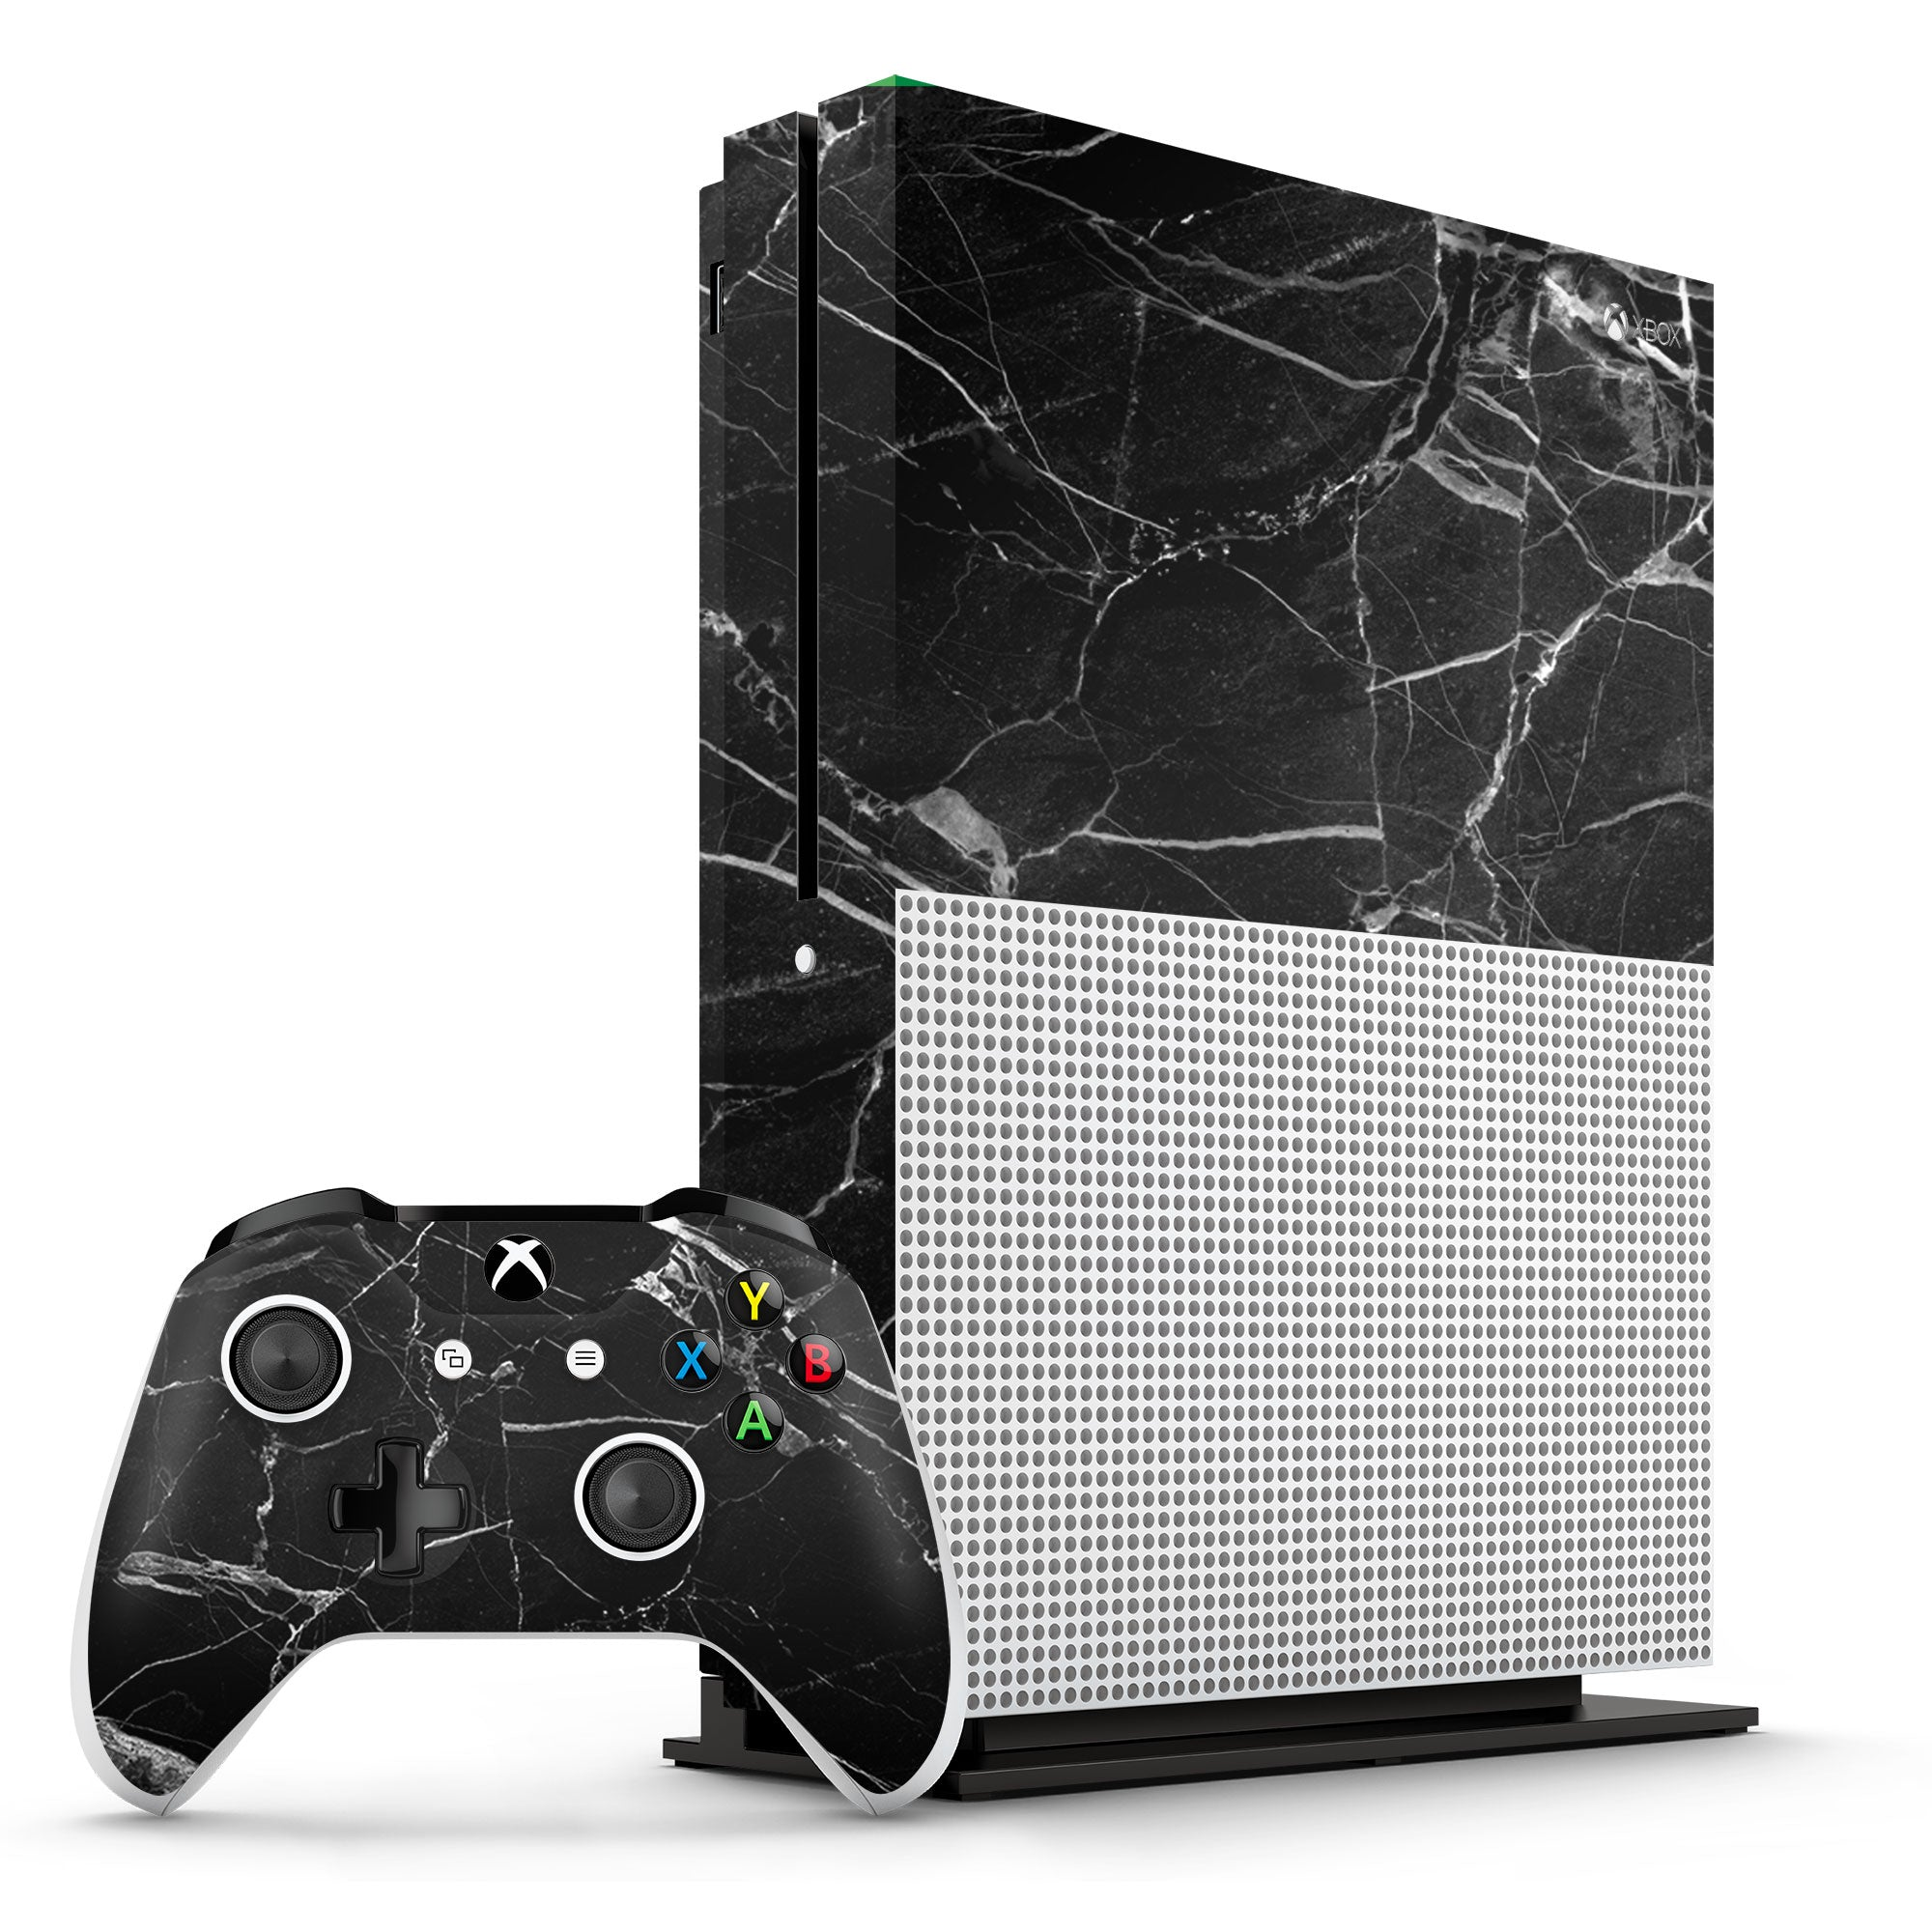 Decals, wraps, and skins for Xbox One S